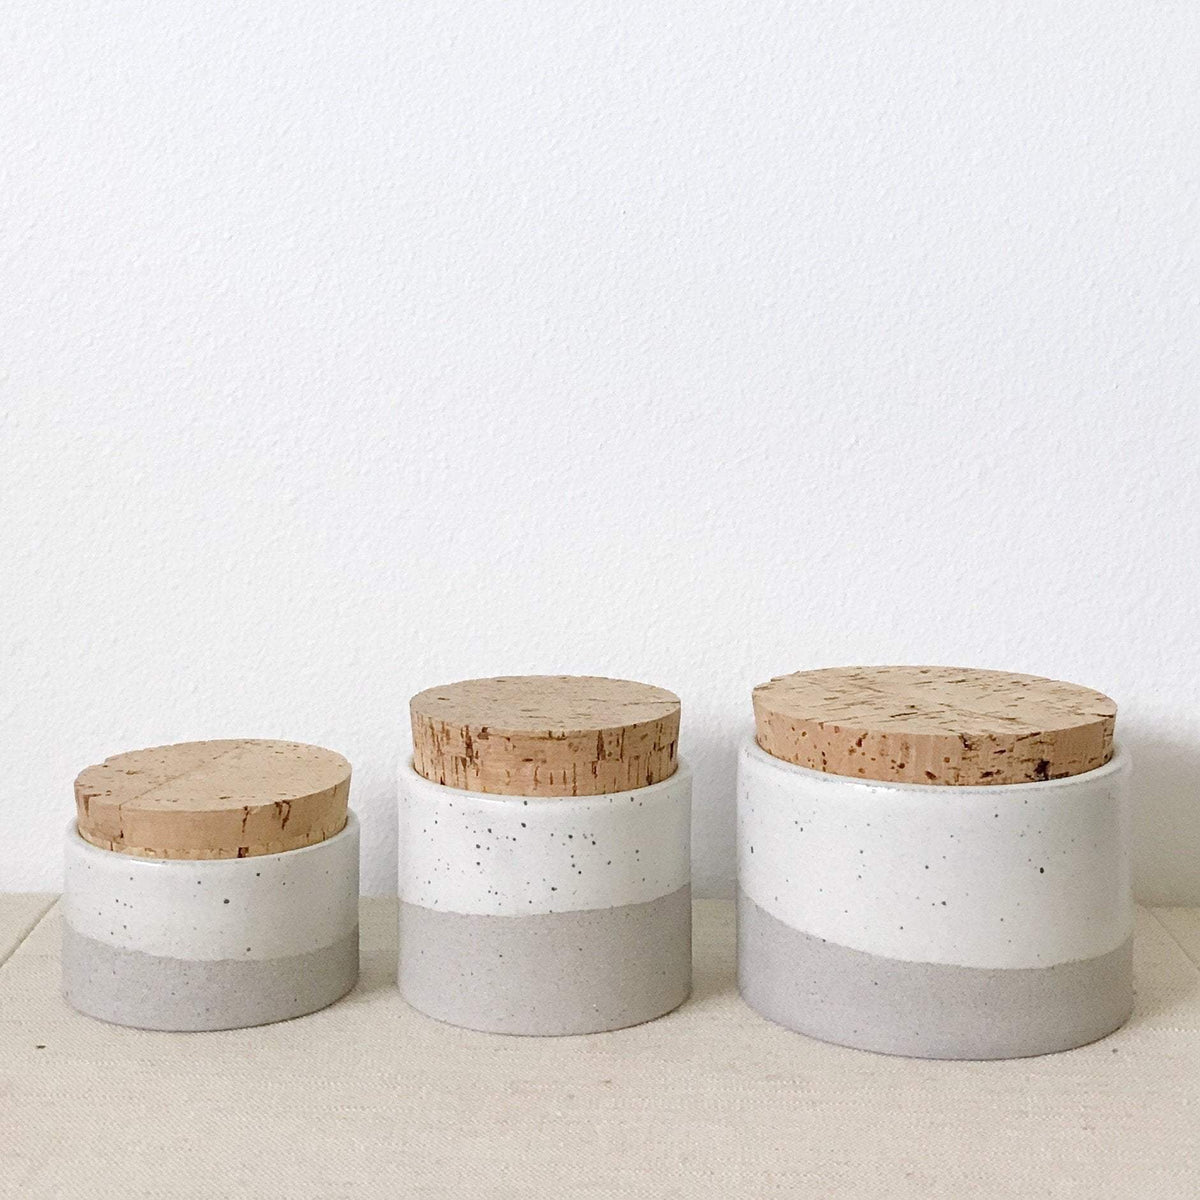 Humble Ceramics Canister 4.5 x 3 greystone